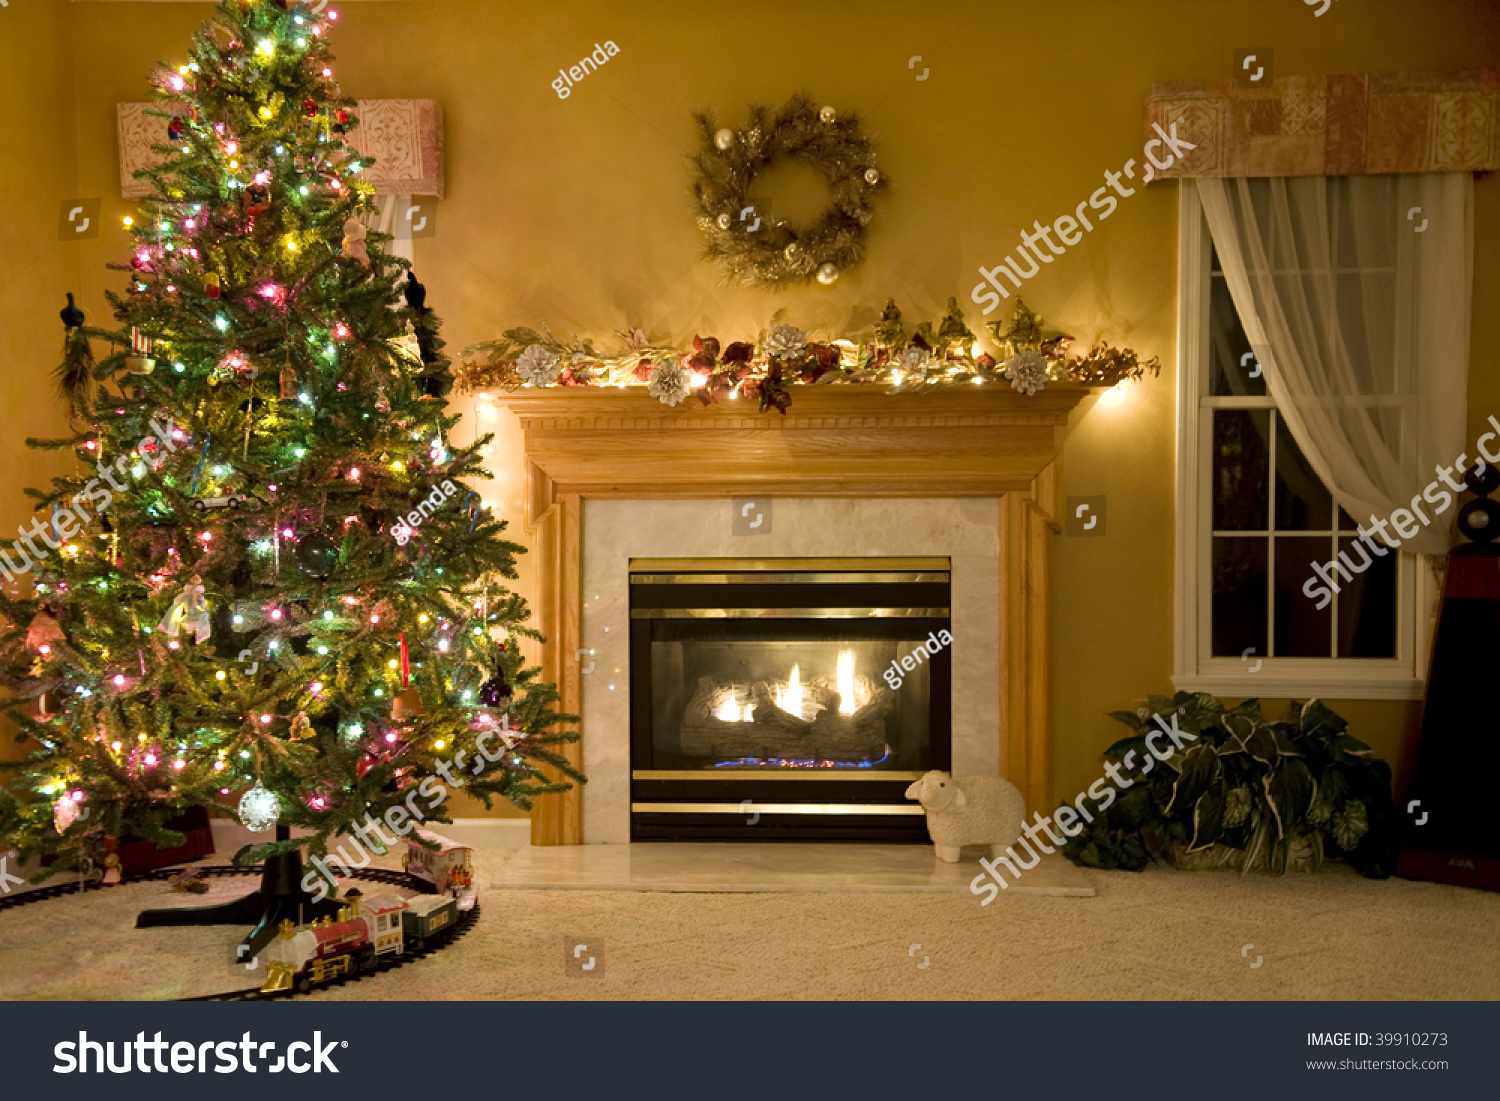 A Beautiful Living Room Decorated For Christmas Stock Photo 39910273 Shutterstock